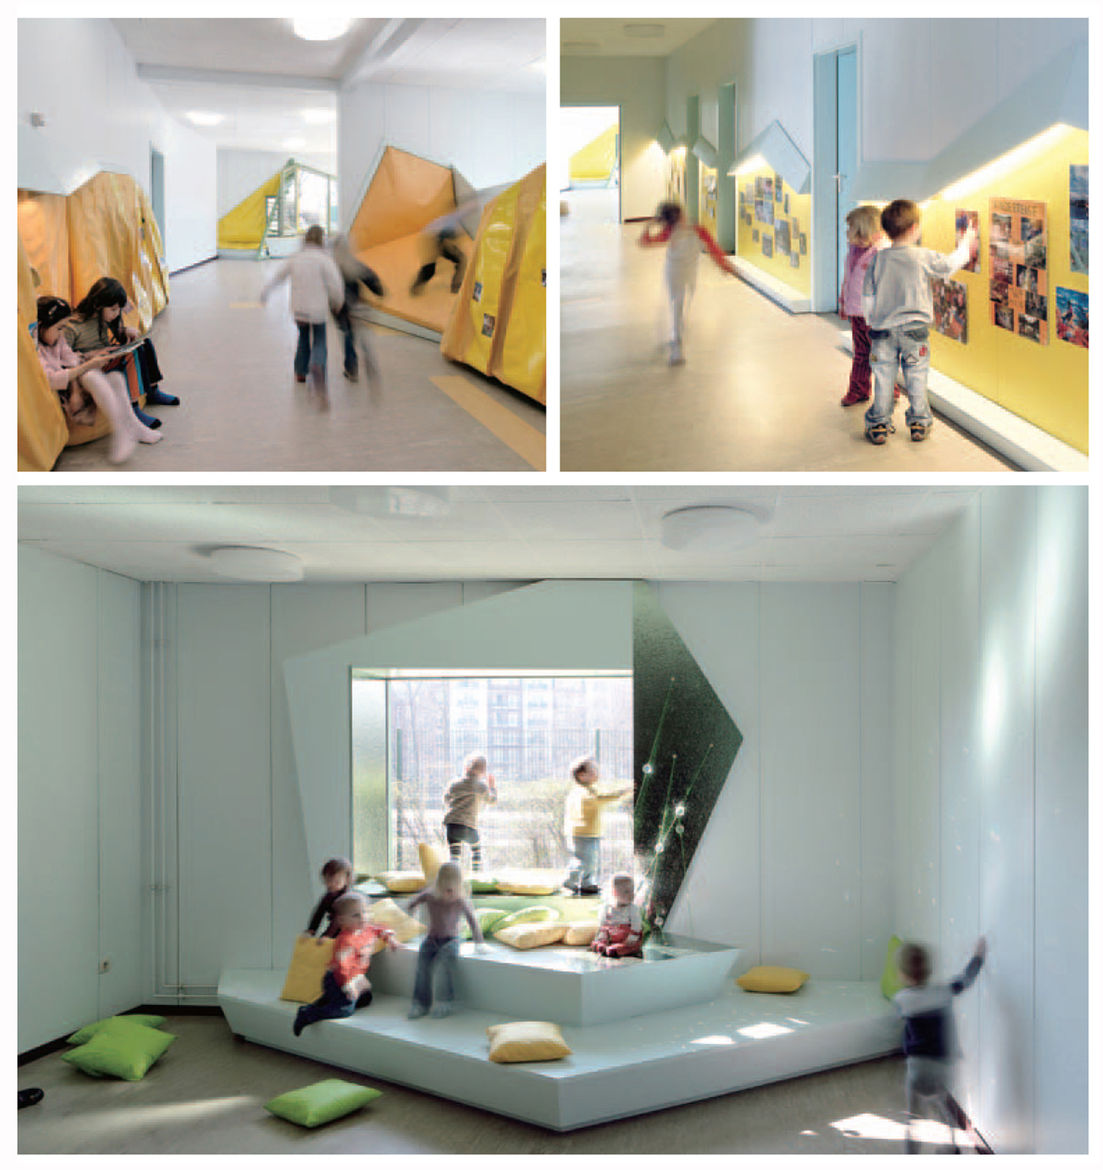 The climbing structures' soft yellow padding and oak framing continue on the inside of the Tuka-Tuka-Land kindergarten creating interactive spaces and few straight walls.